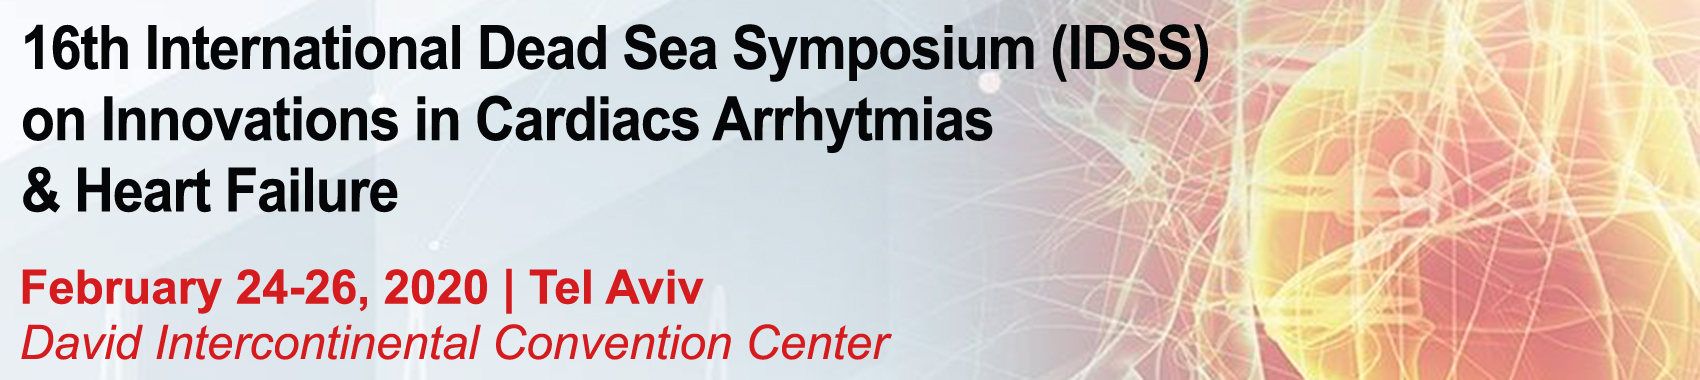 16th INTERNATIONAL DEAD SEA SYMPOSIUM ON INNOVATIONS IN CARDIAC ARRHYTHMIAS & HEART FAILURE